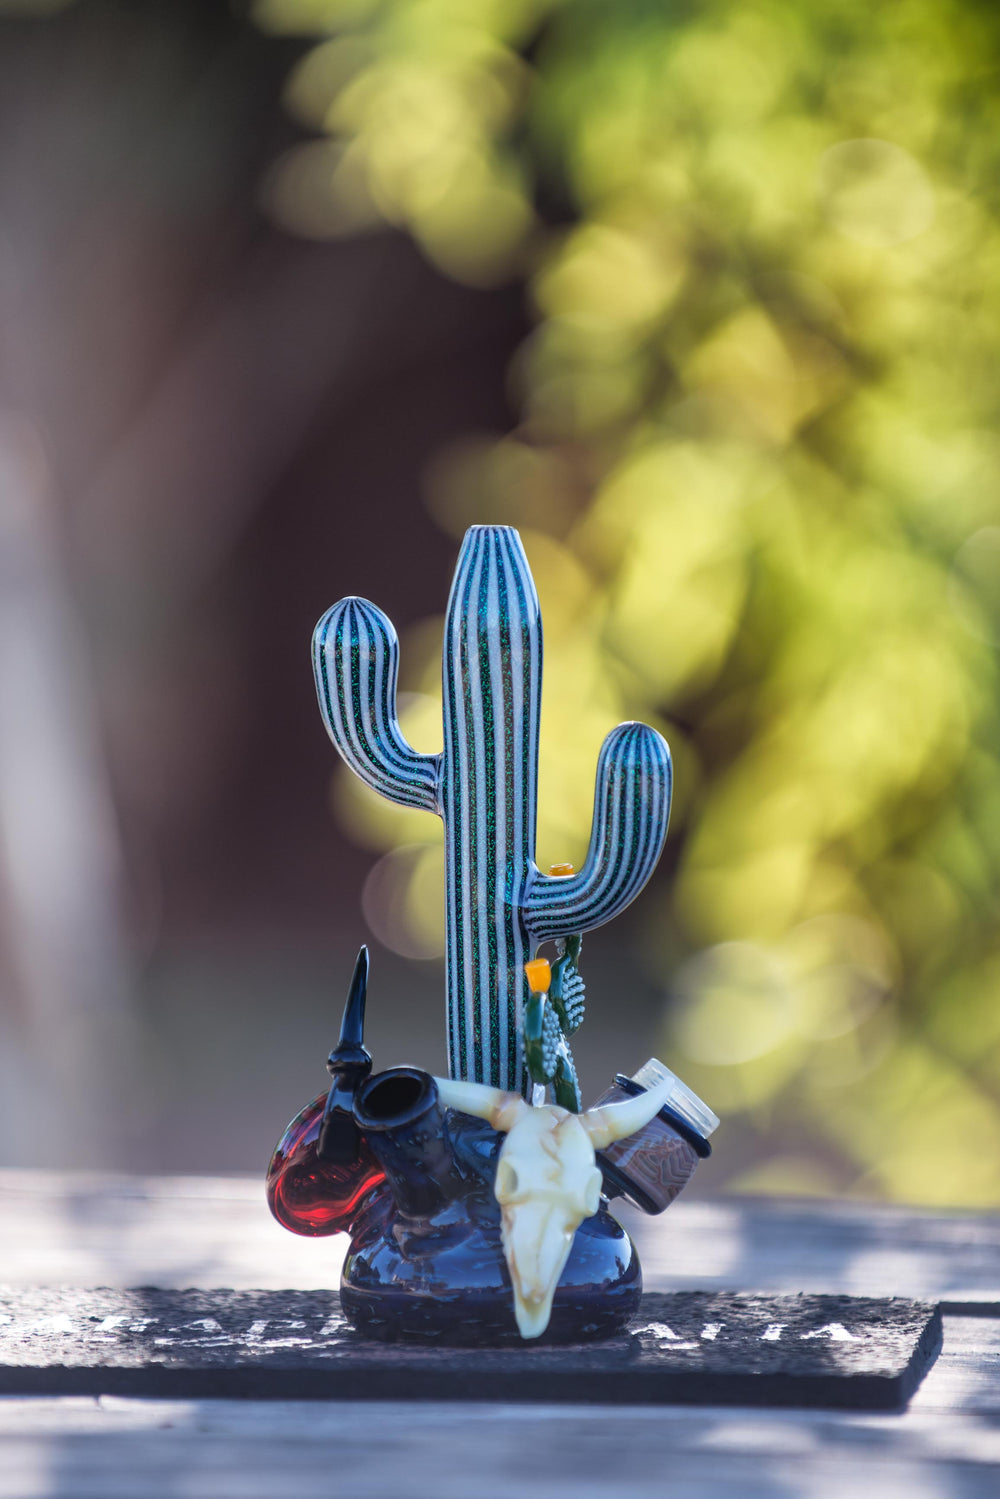 HicDogg X Steve H. Glass Arizona Landscape Glow In The Dark Rigs w/ Pick-Axe Dabber - Headies